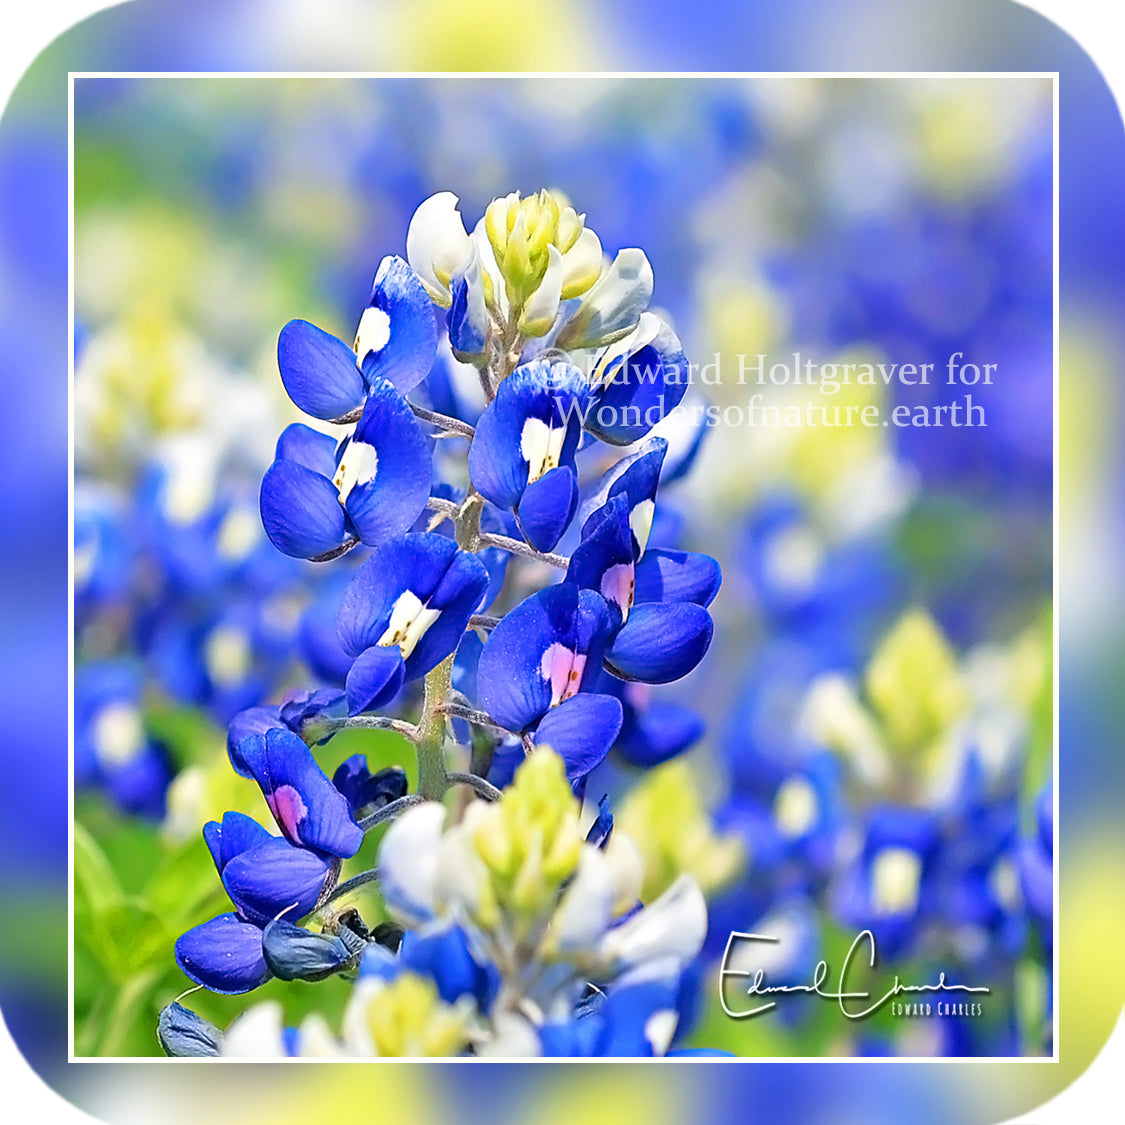 Flowers - Bluebonnets